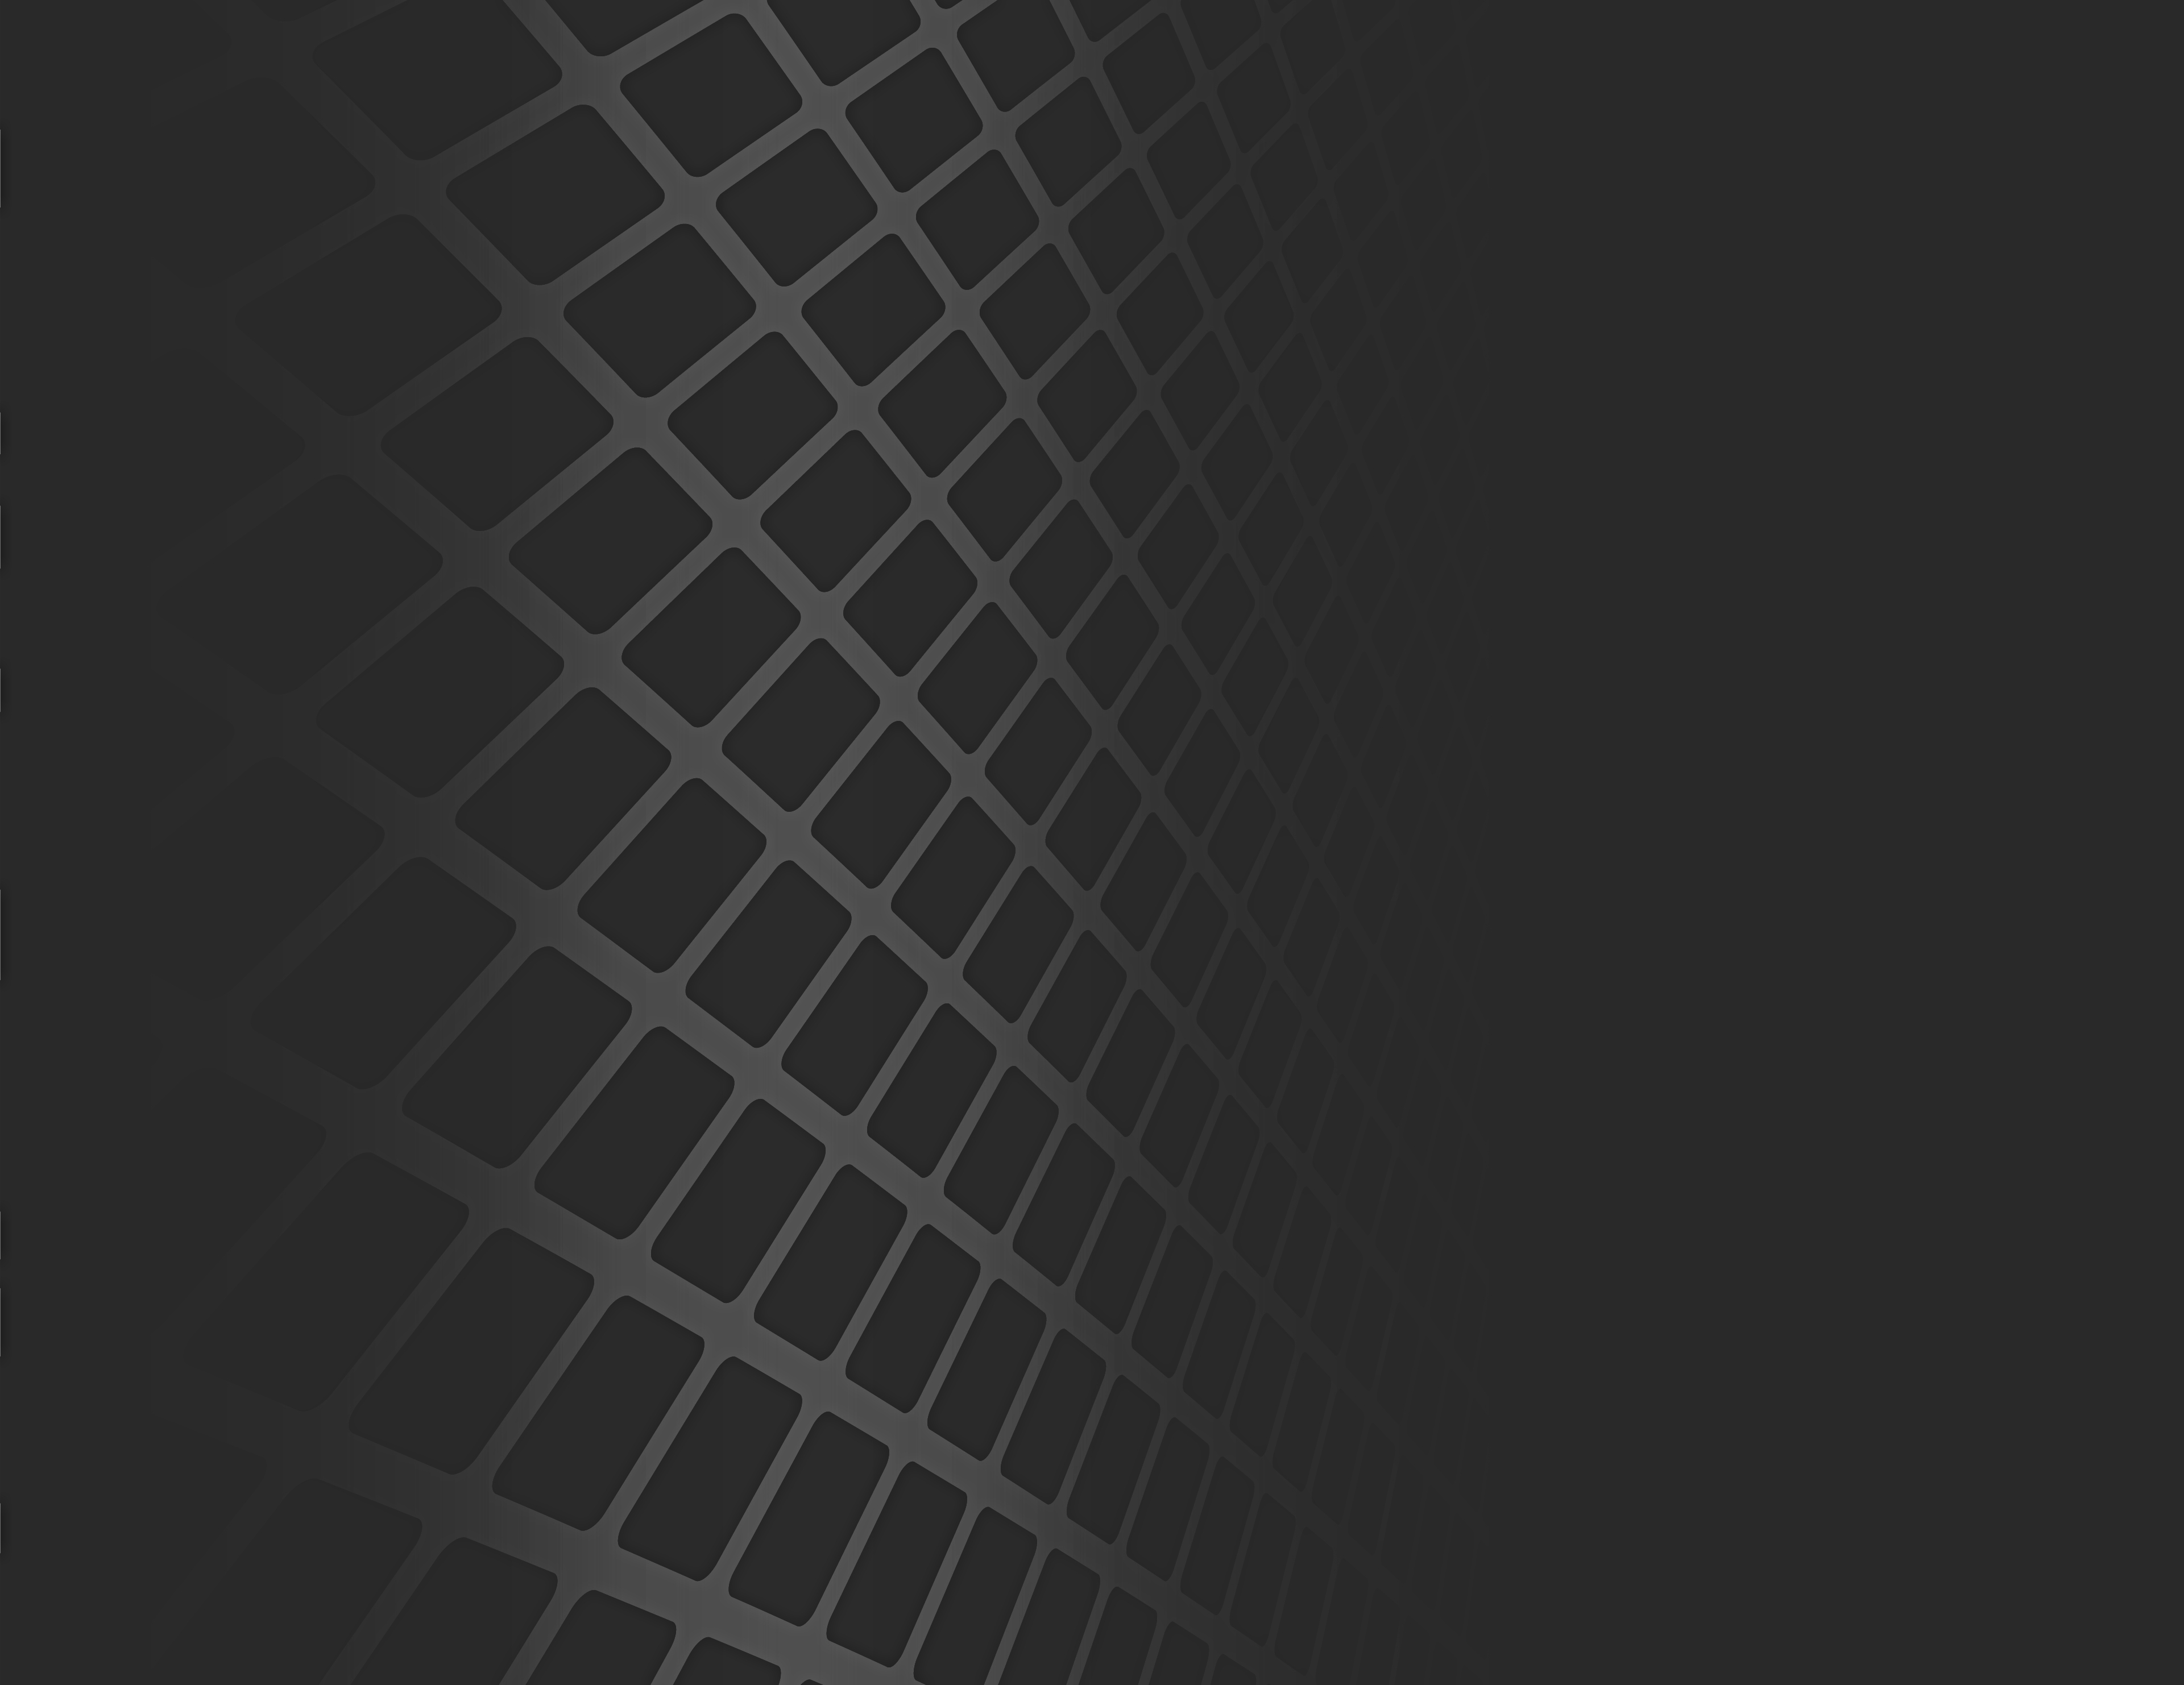 Abstract dark background with pattern | Public domain photos